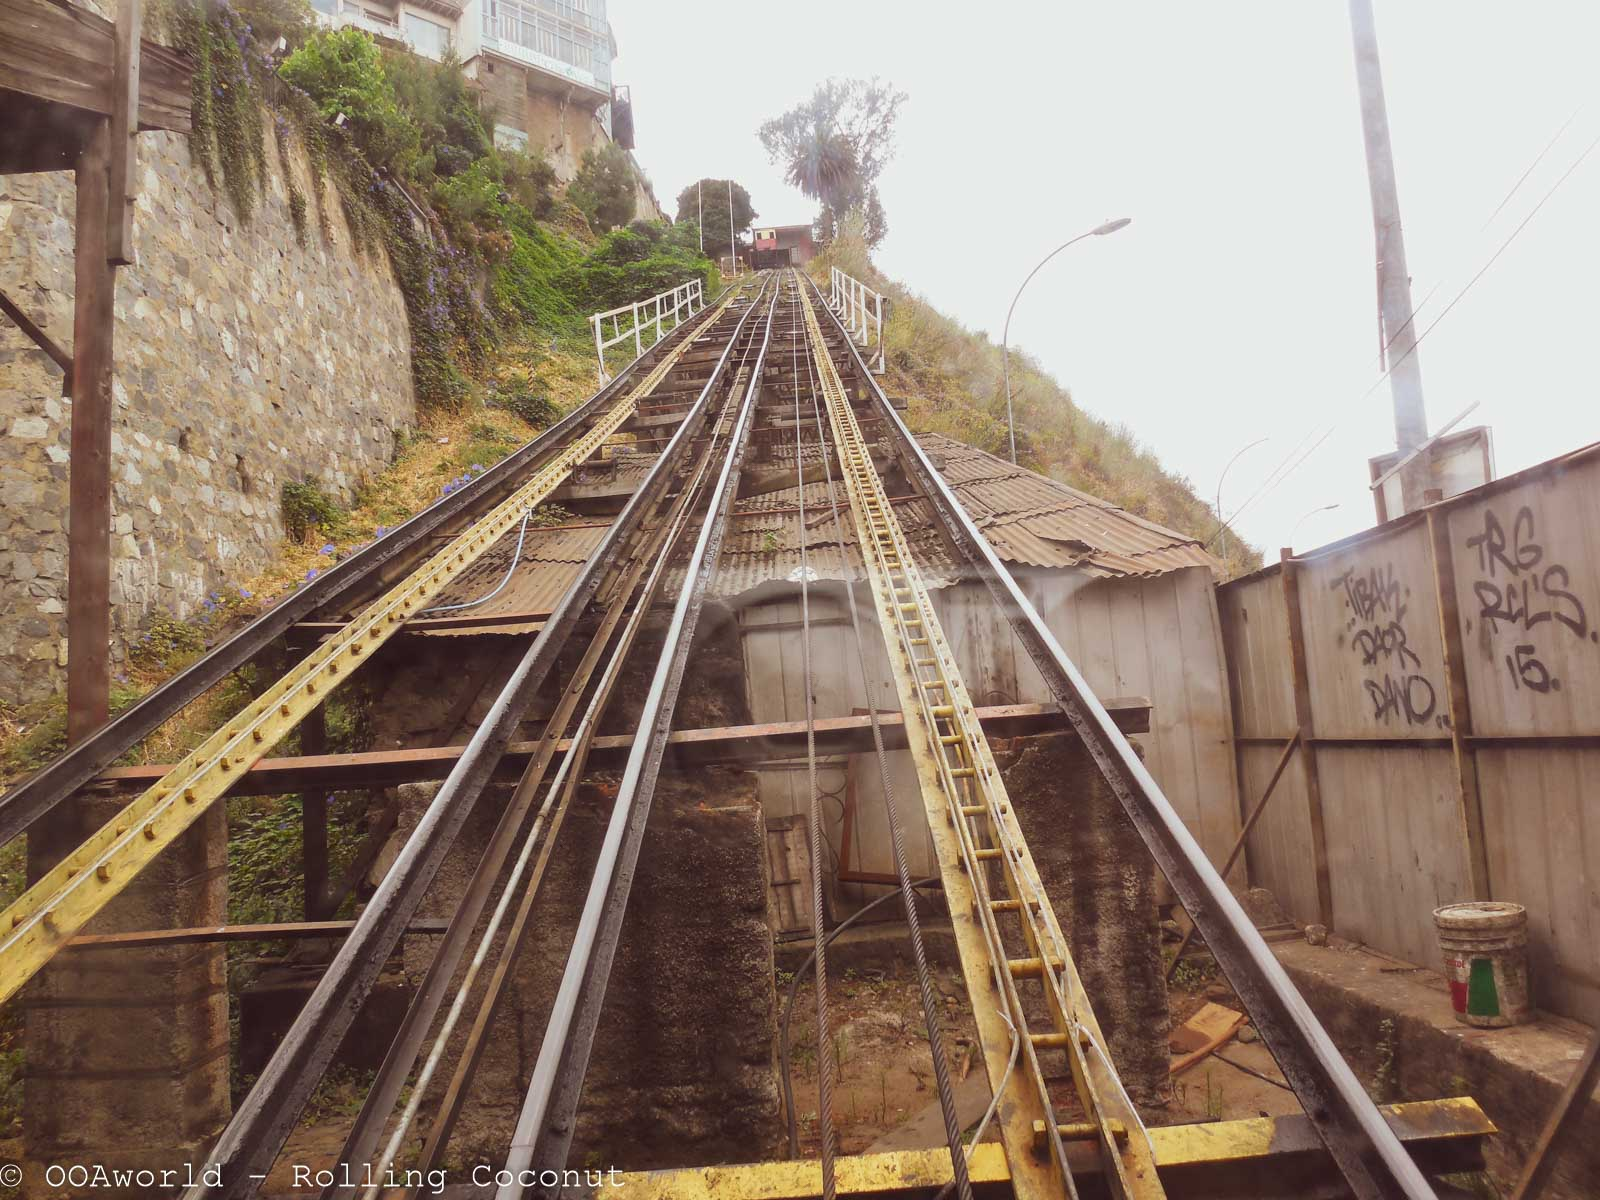 Ascensores Going Up Valparaiso Chile - Photo Ooaworld Rolling Coconut